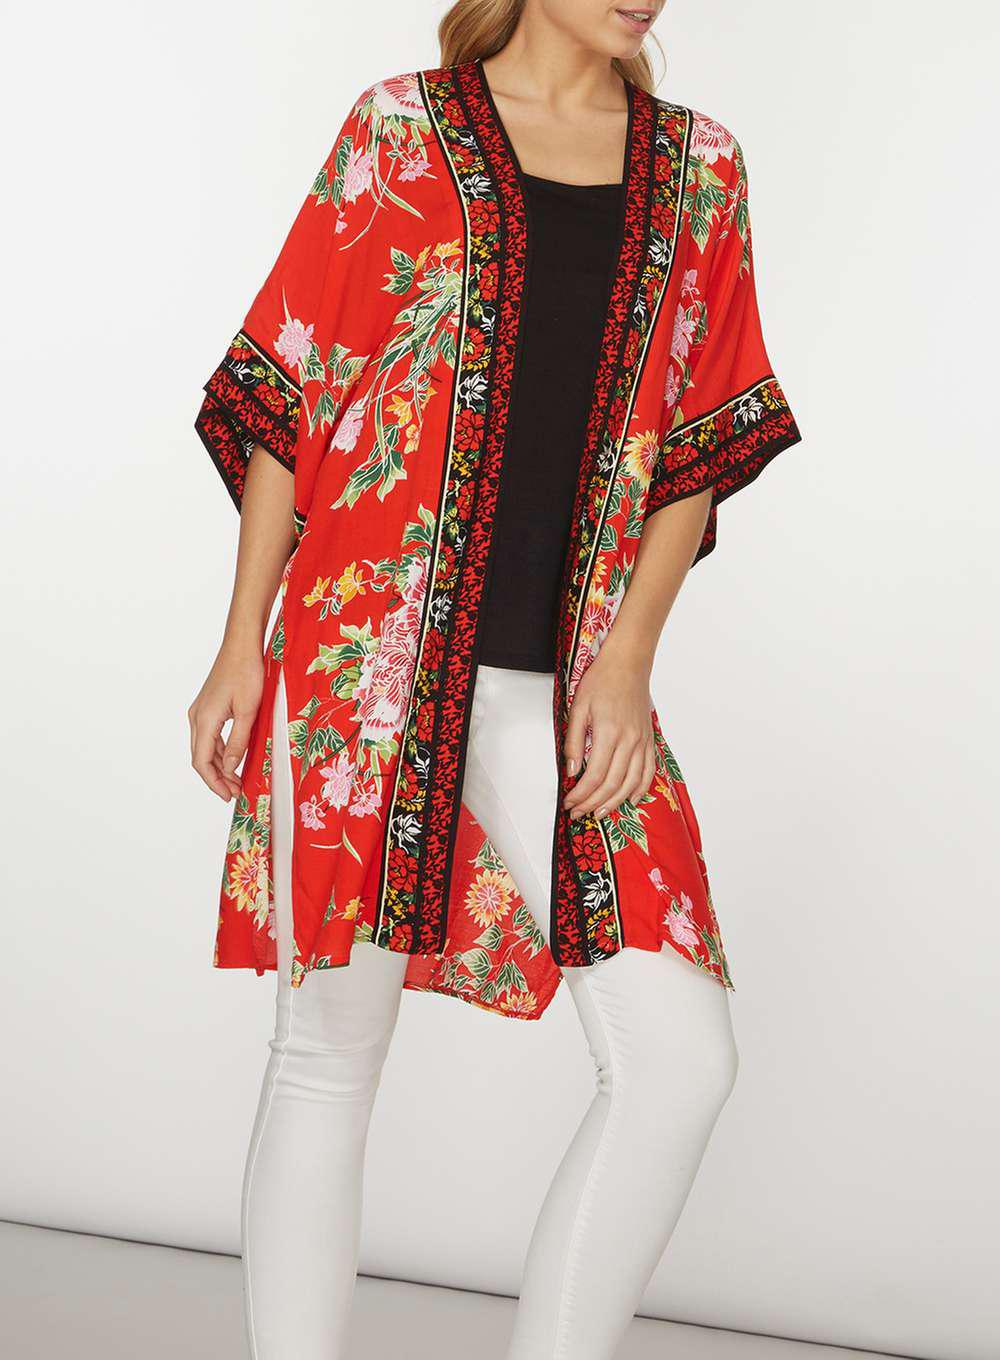 76a23041a Dorothy Perkins Red Oriental Floral Cover Up in Red - Lyst